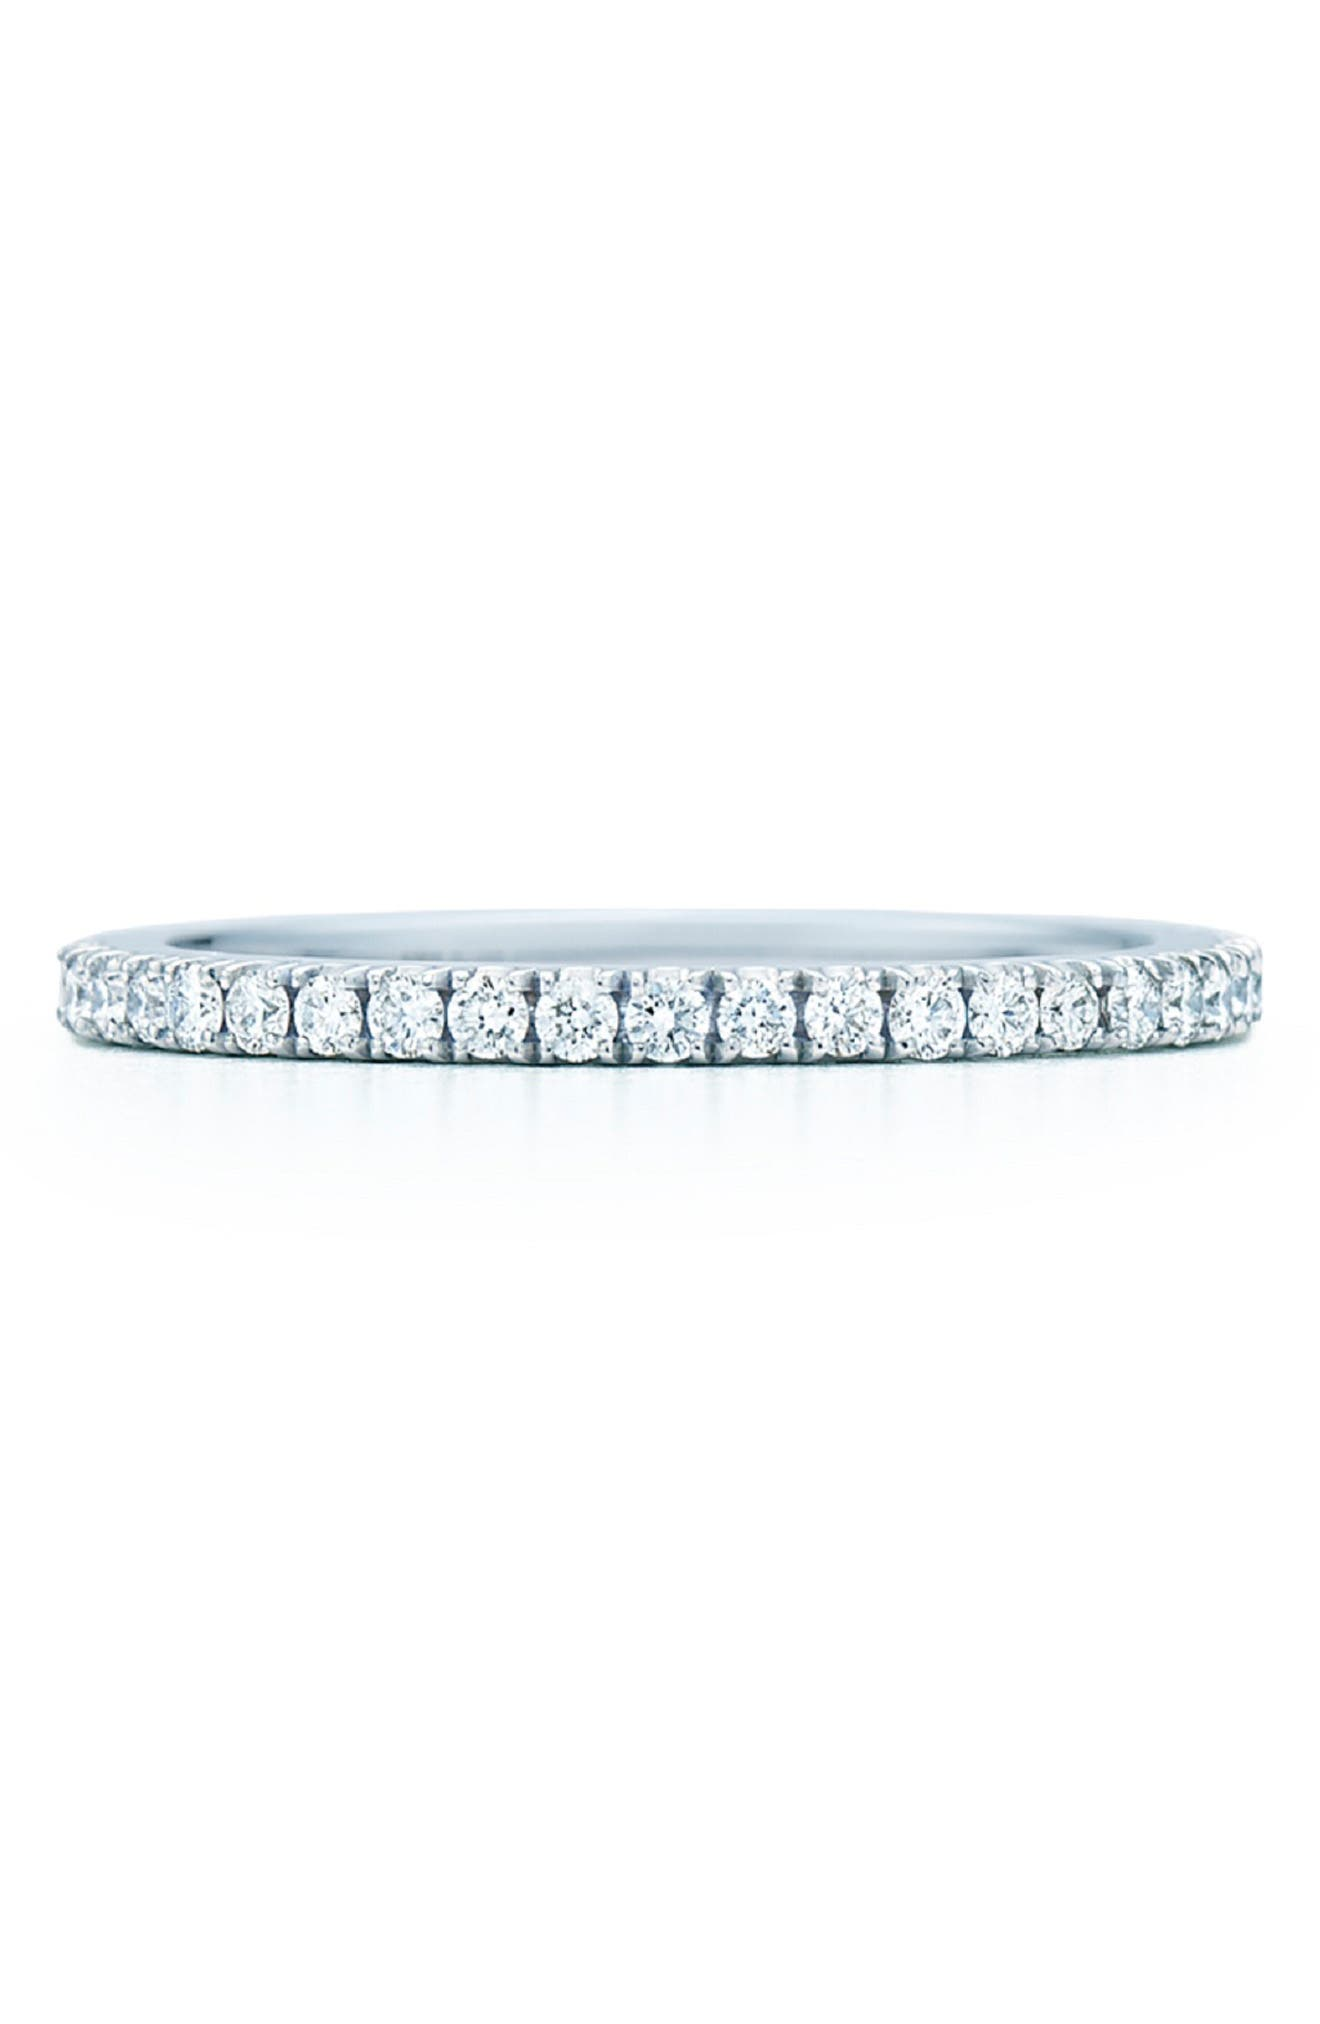 Diamond Stackable Ring,                             Main thumbnail 1, color,                             WHITE GOLD